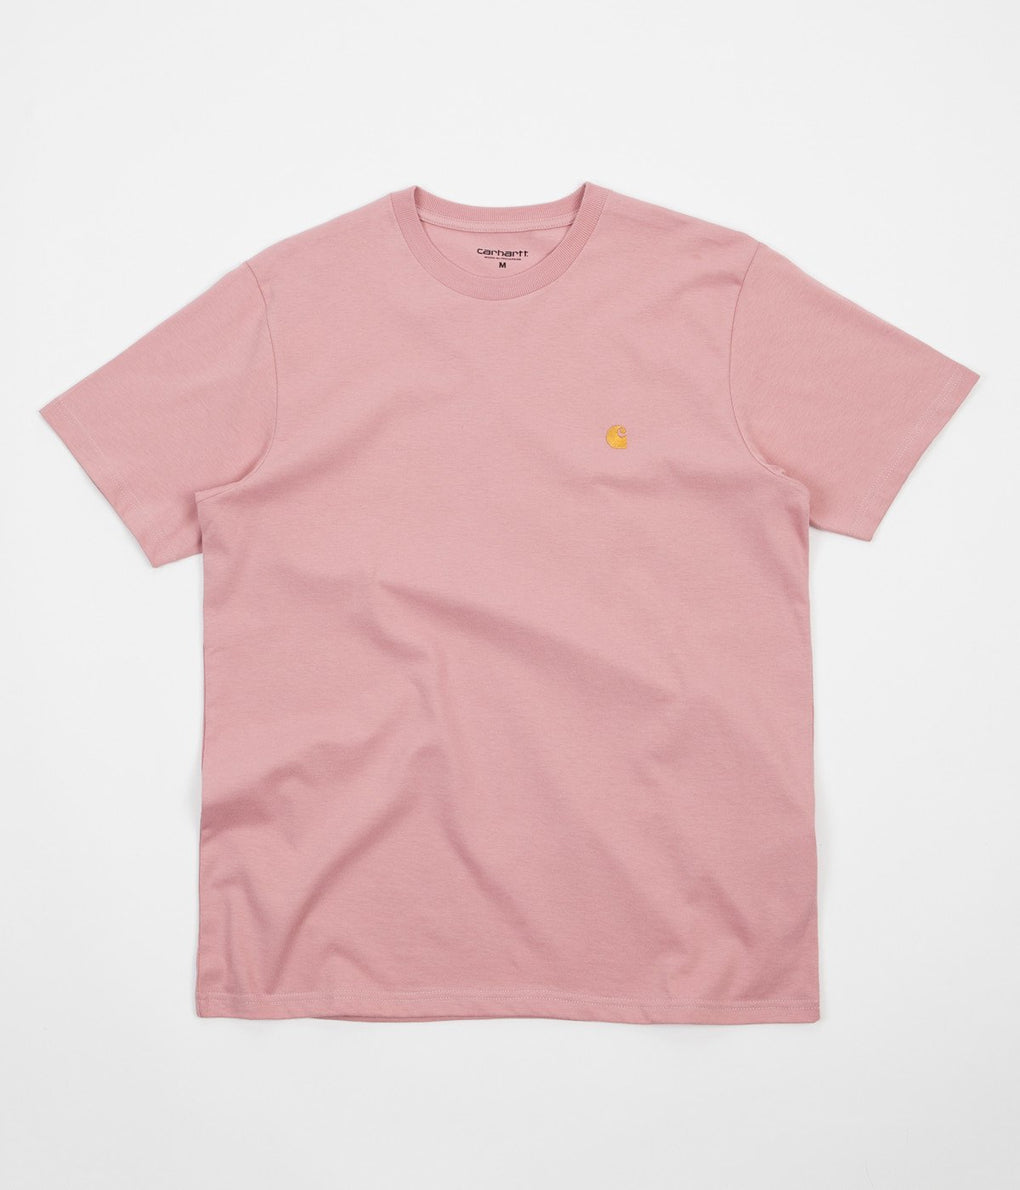 Carhartt Chase T-Shirt - Soft Rose / Gold